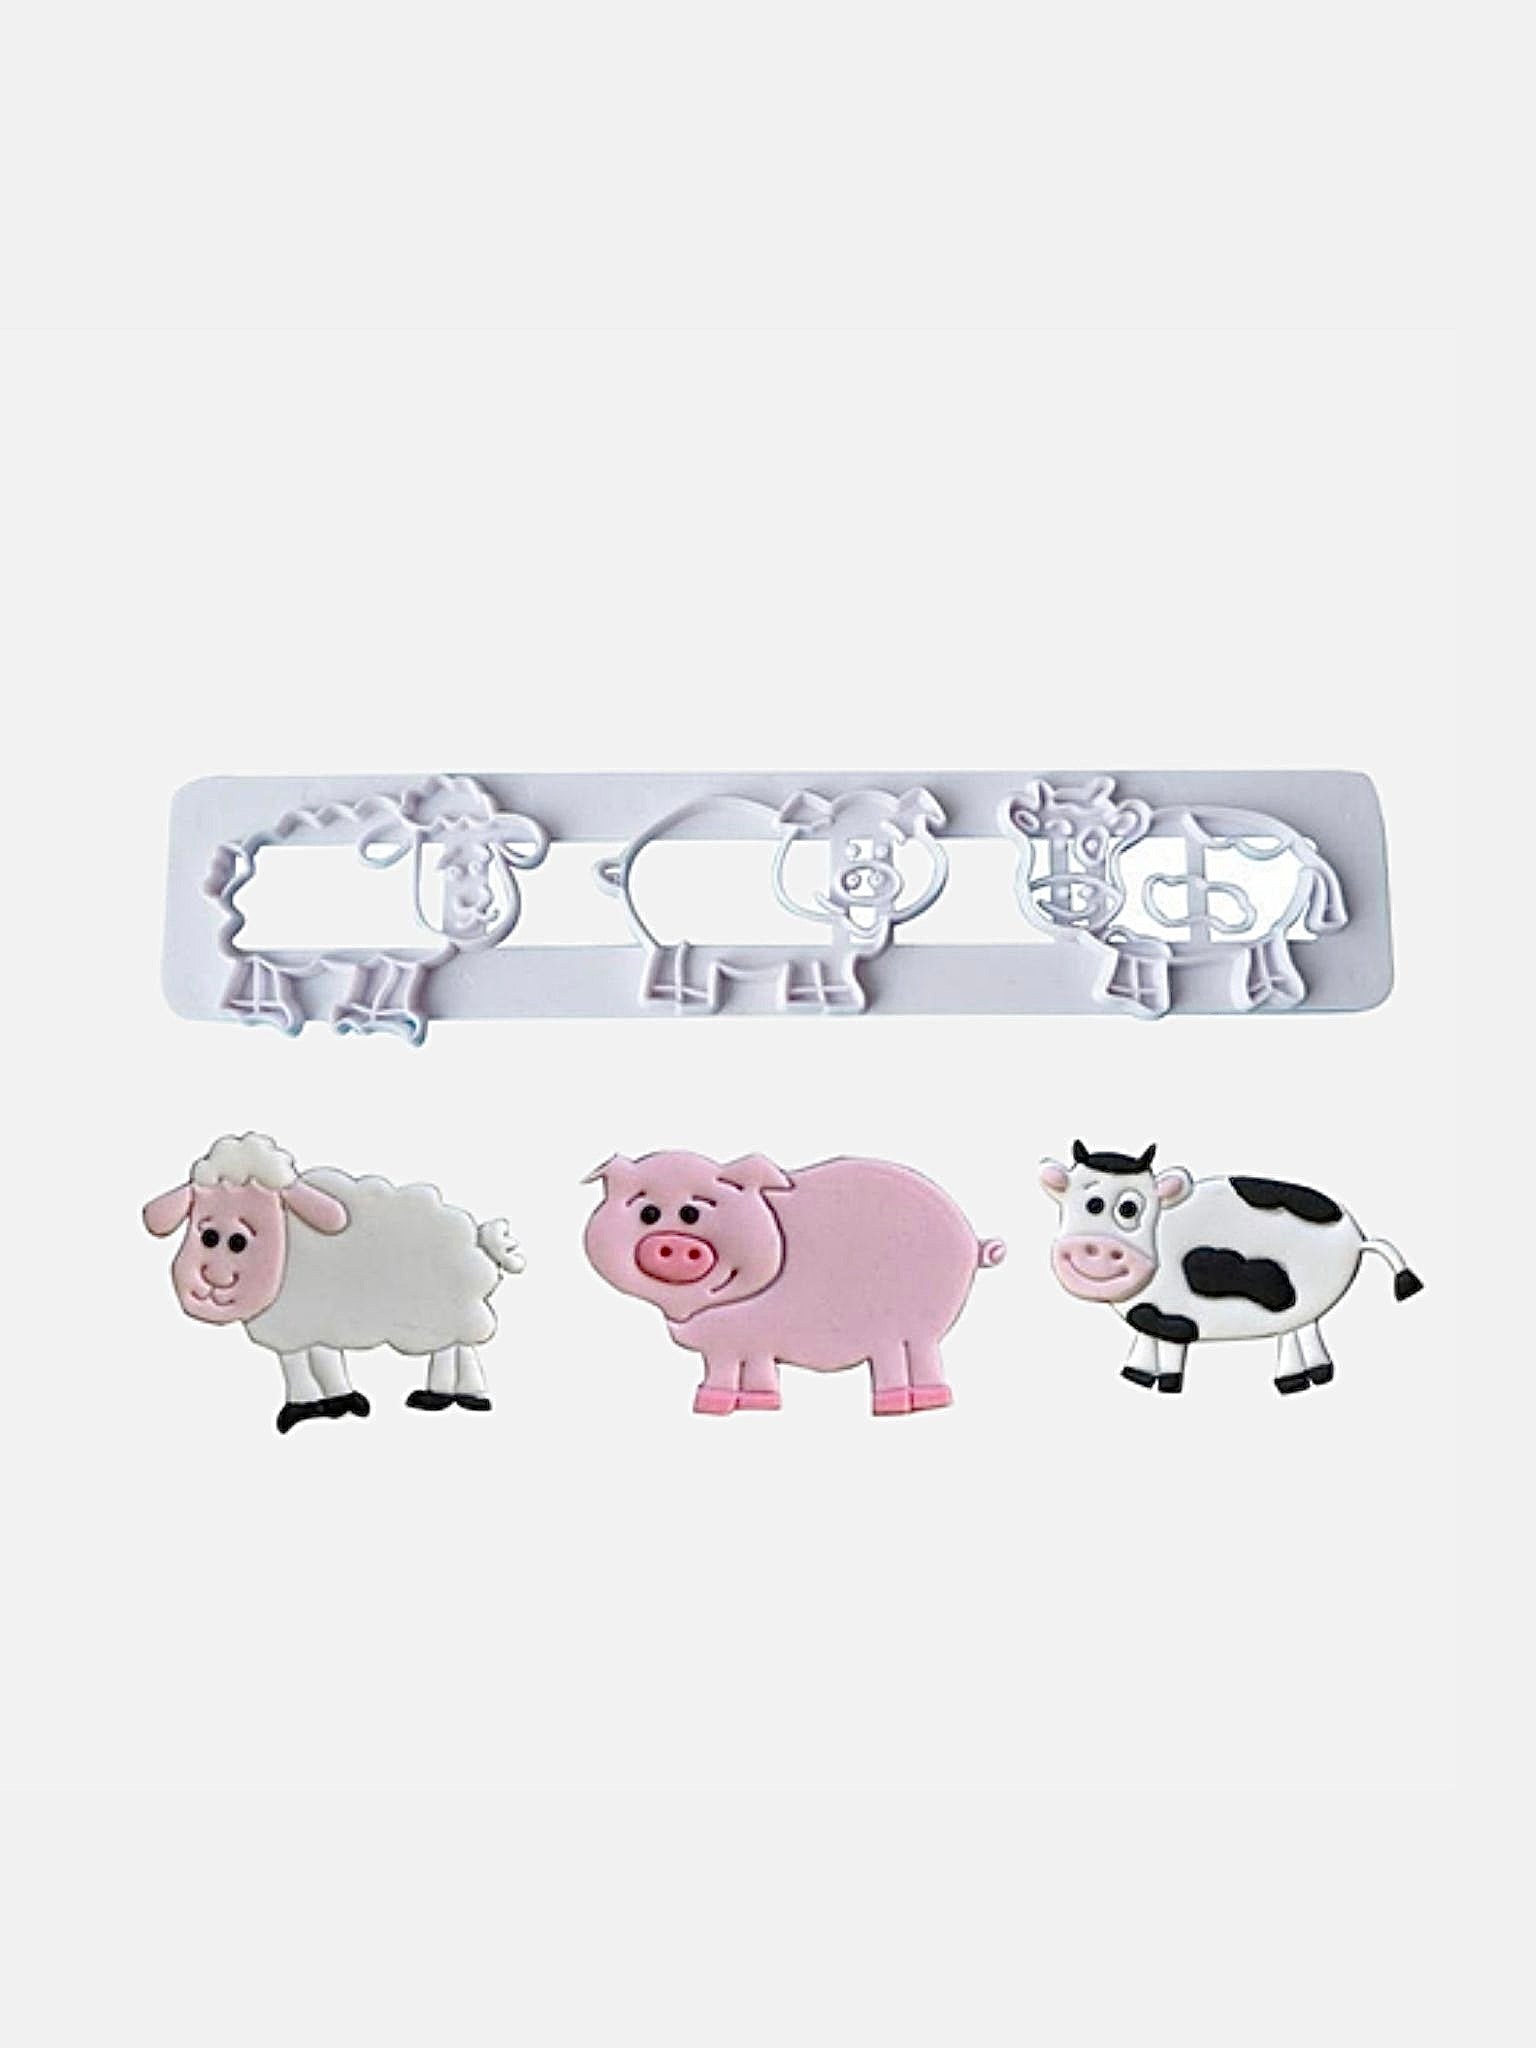 Biscuit Mold       Cute farm animal cutting mold pig sheep cow cartoon DIY fondant cake bakeware molds Trend